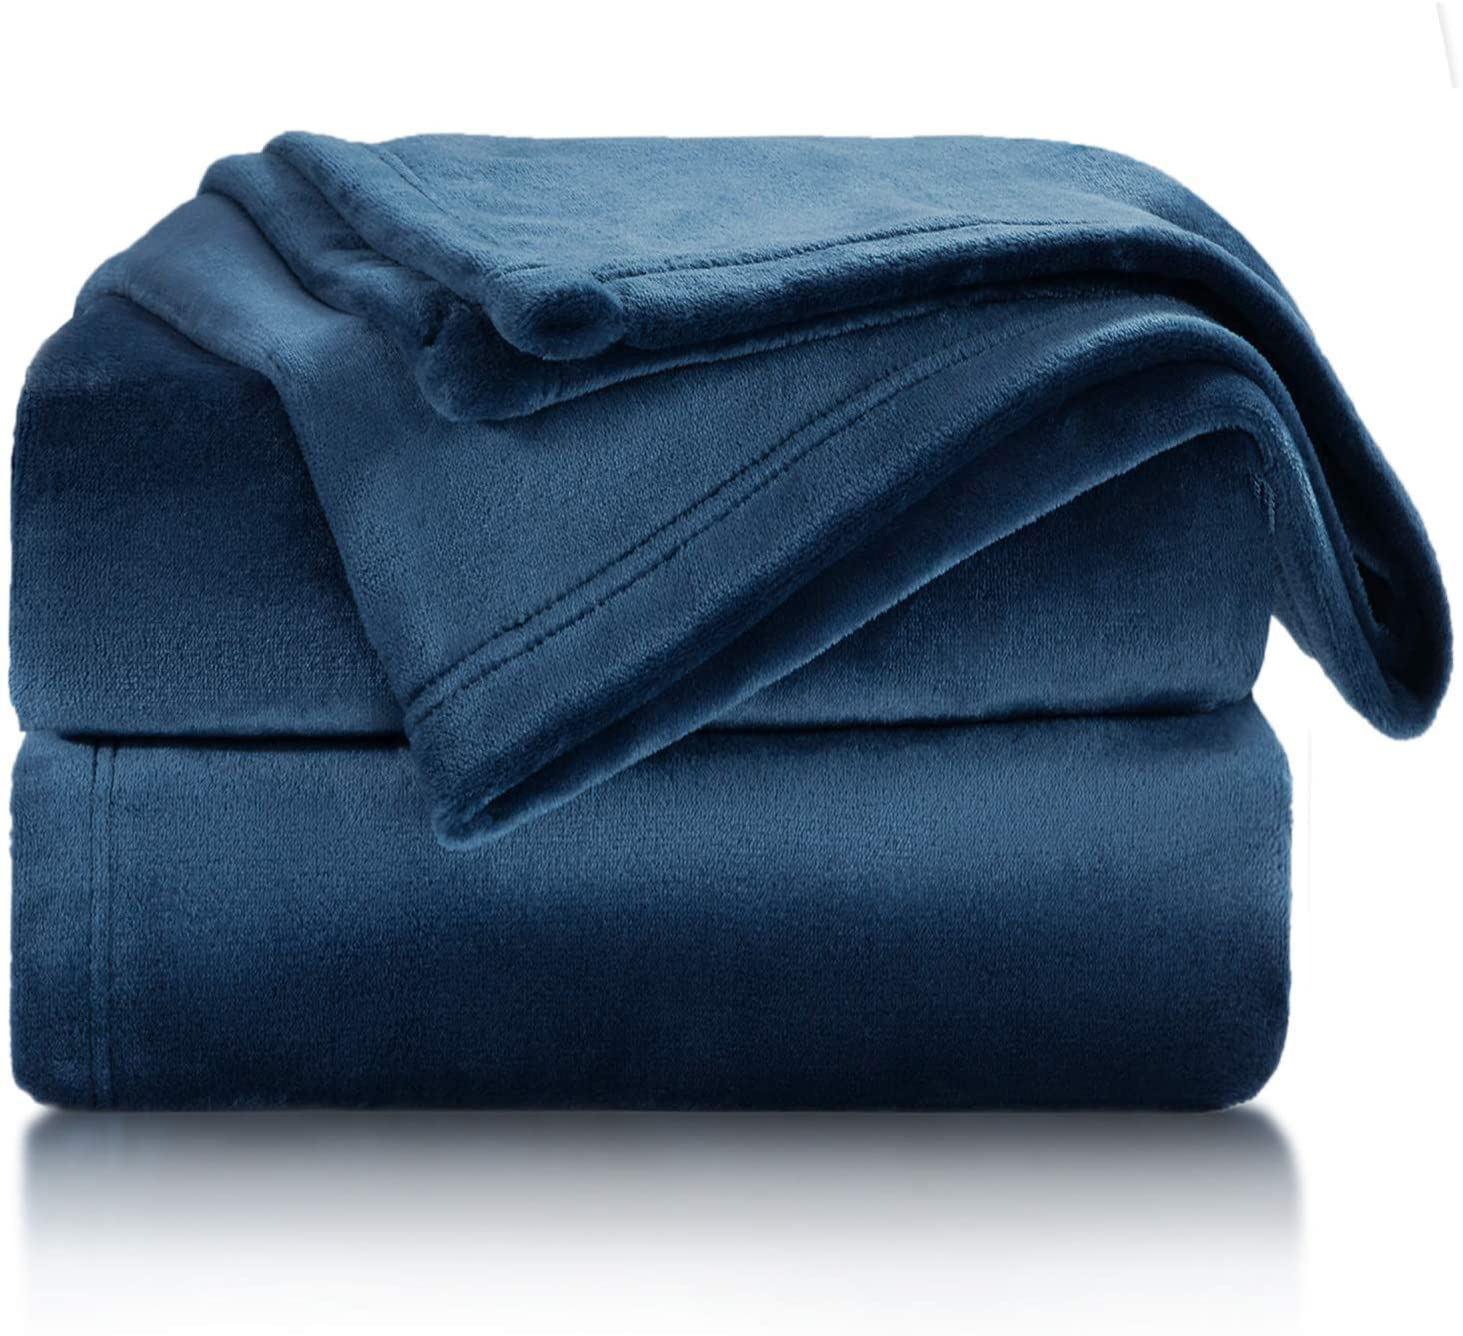 Bedsure Flannel Throw